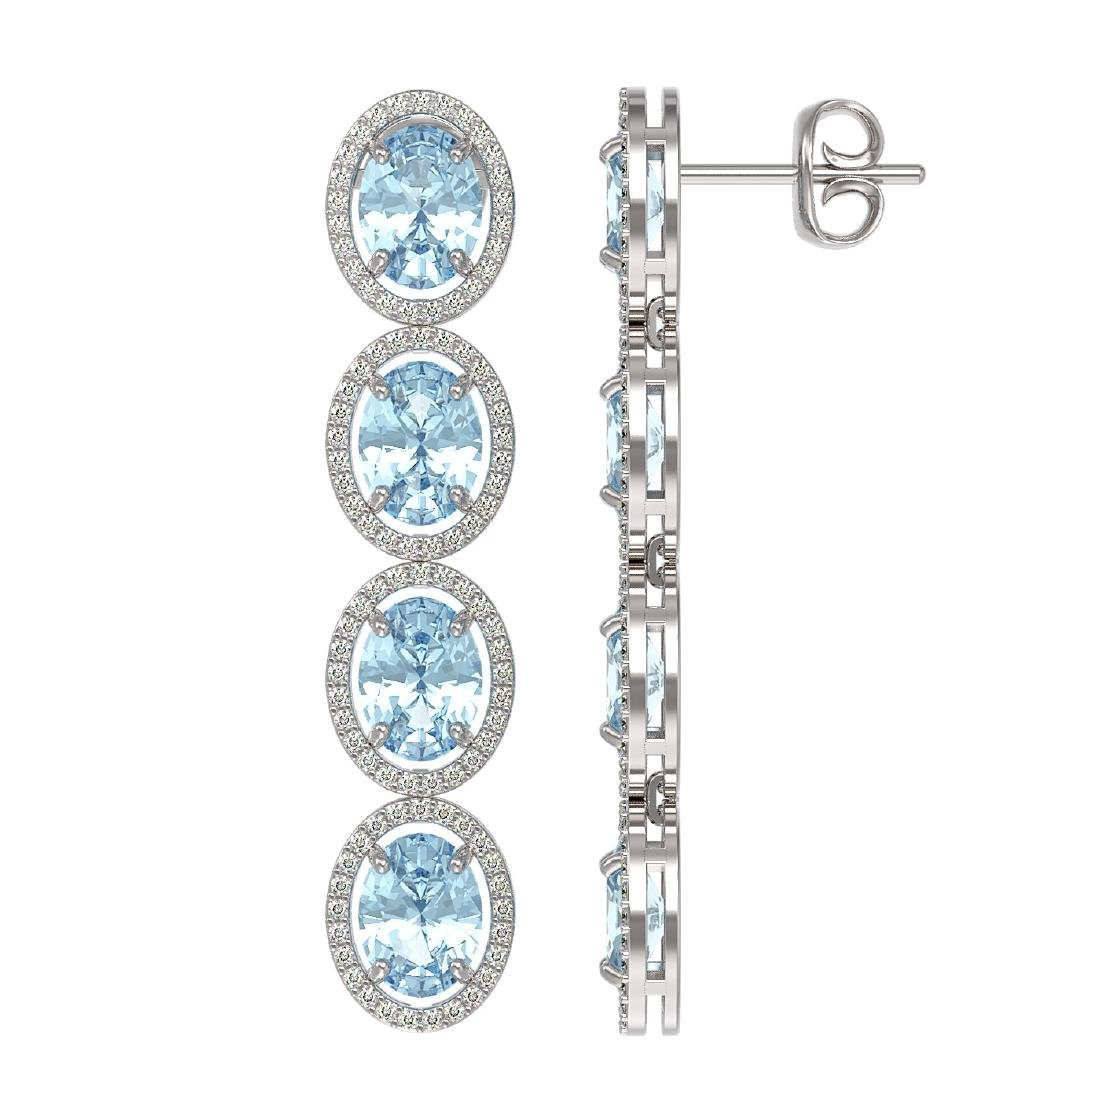 11.72 CTW Aquamarine & Diamond Halo Earrings 10K White - 2